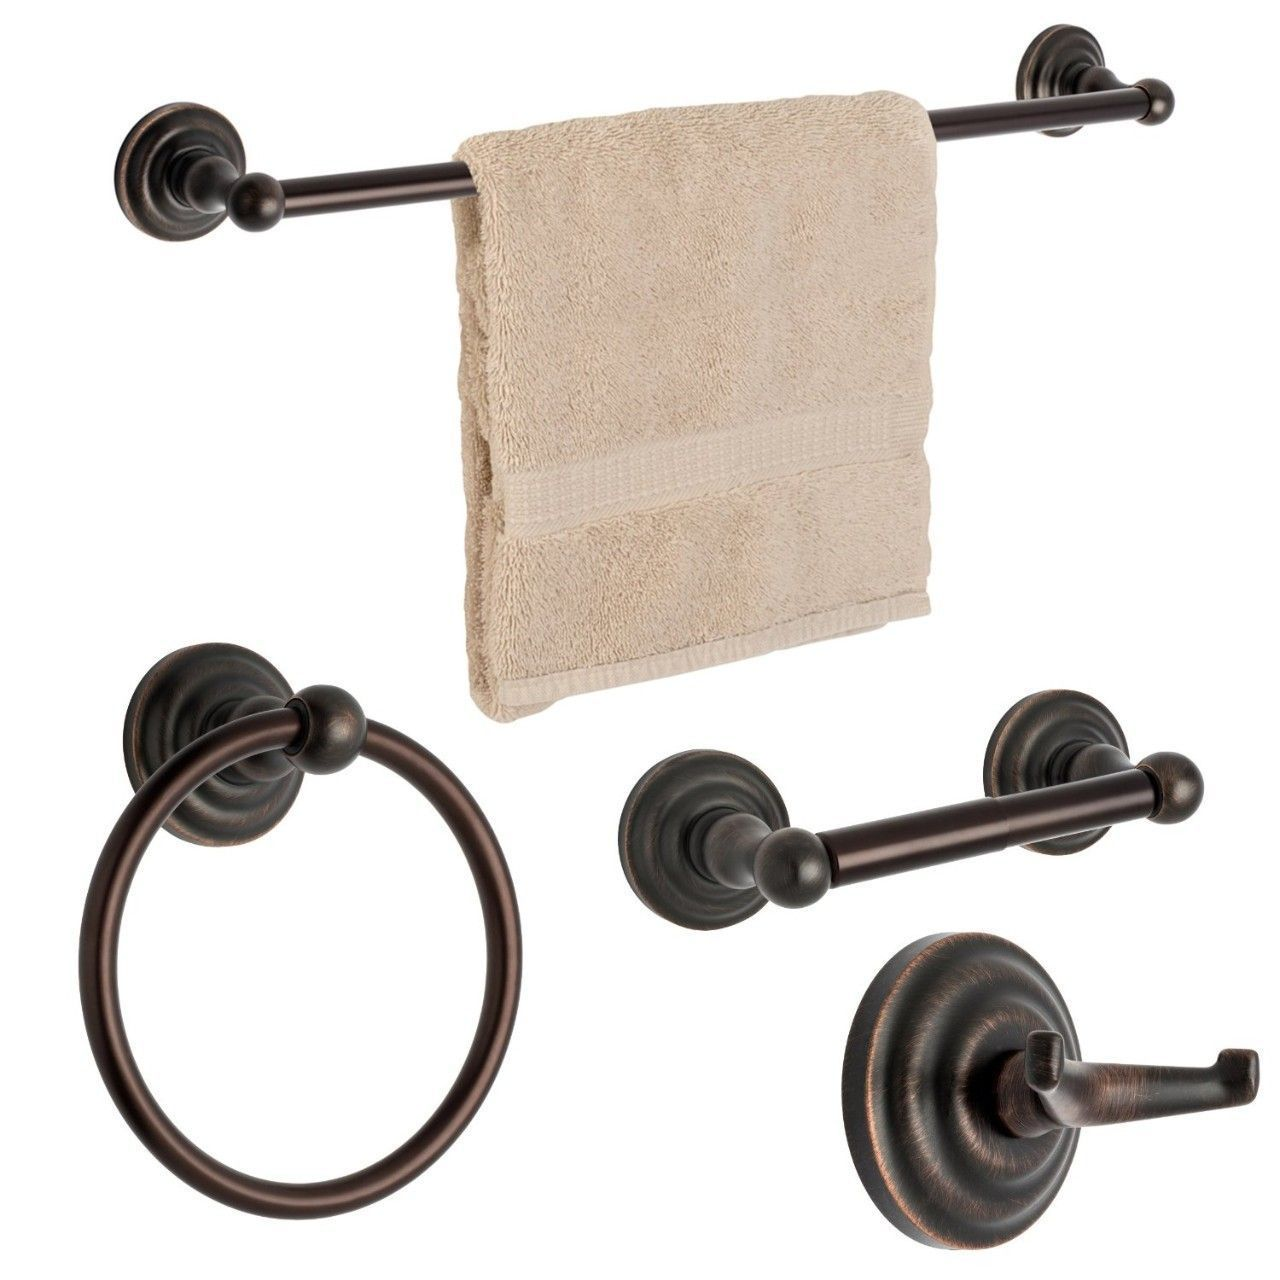 Dynasty Hardware Palisades 3800-ORB-4PC Oil Rubbed Bronze 4-Piece Bathroom Hardware Set